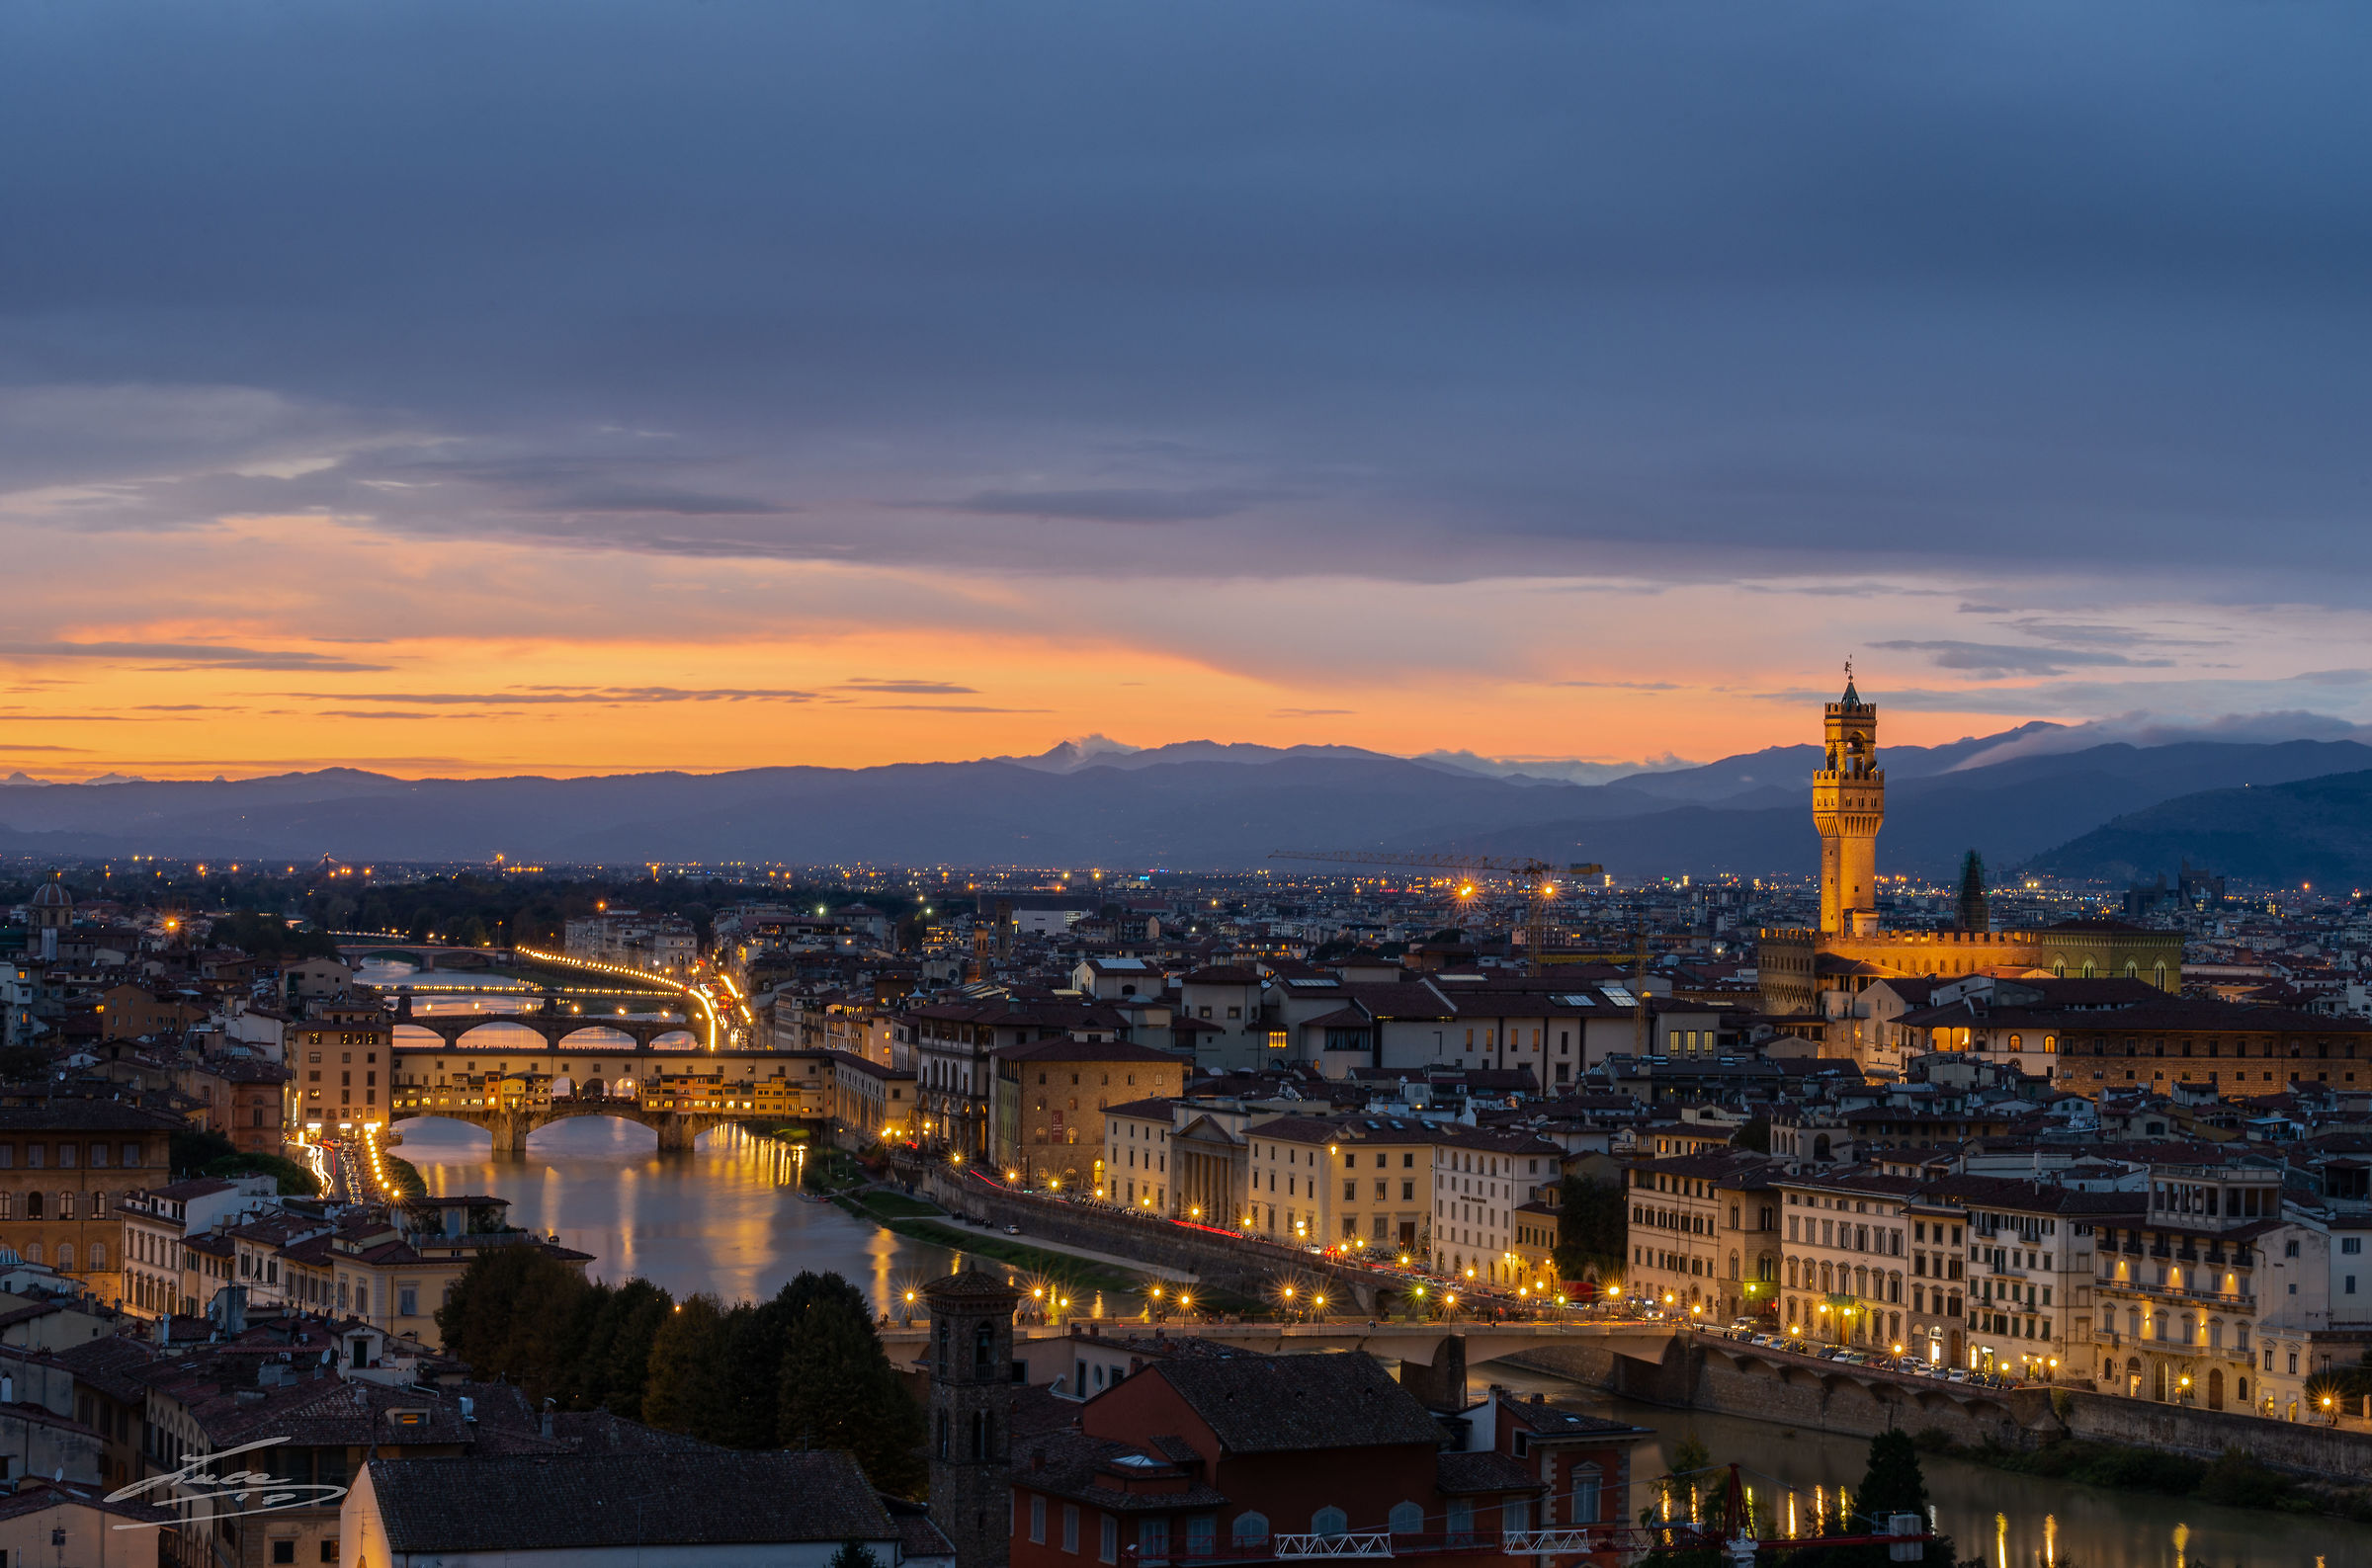 Sunset in Florence...